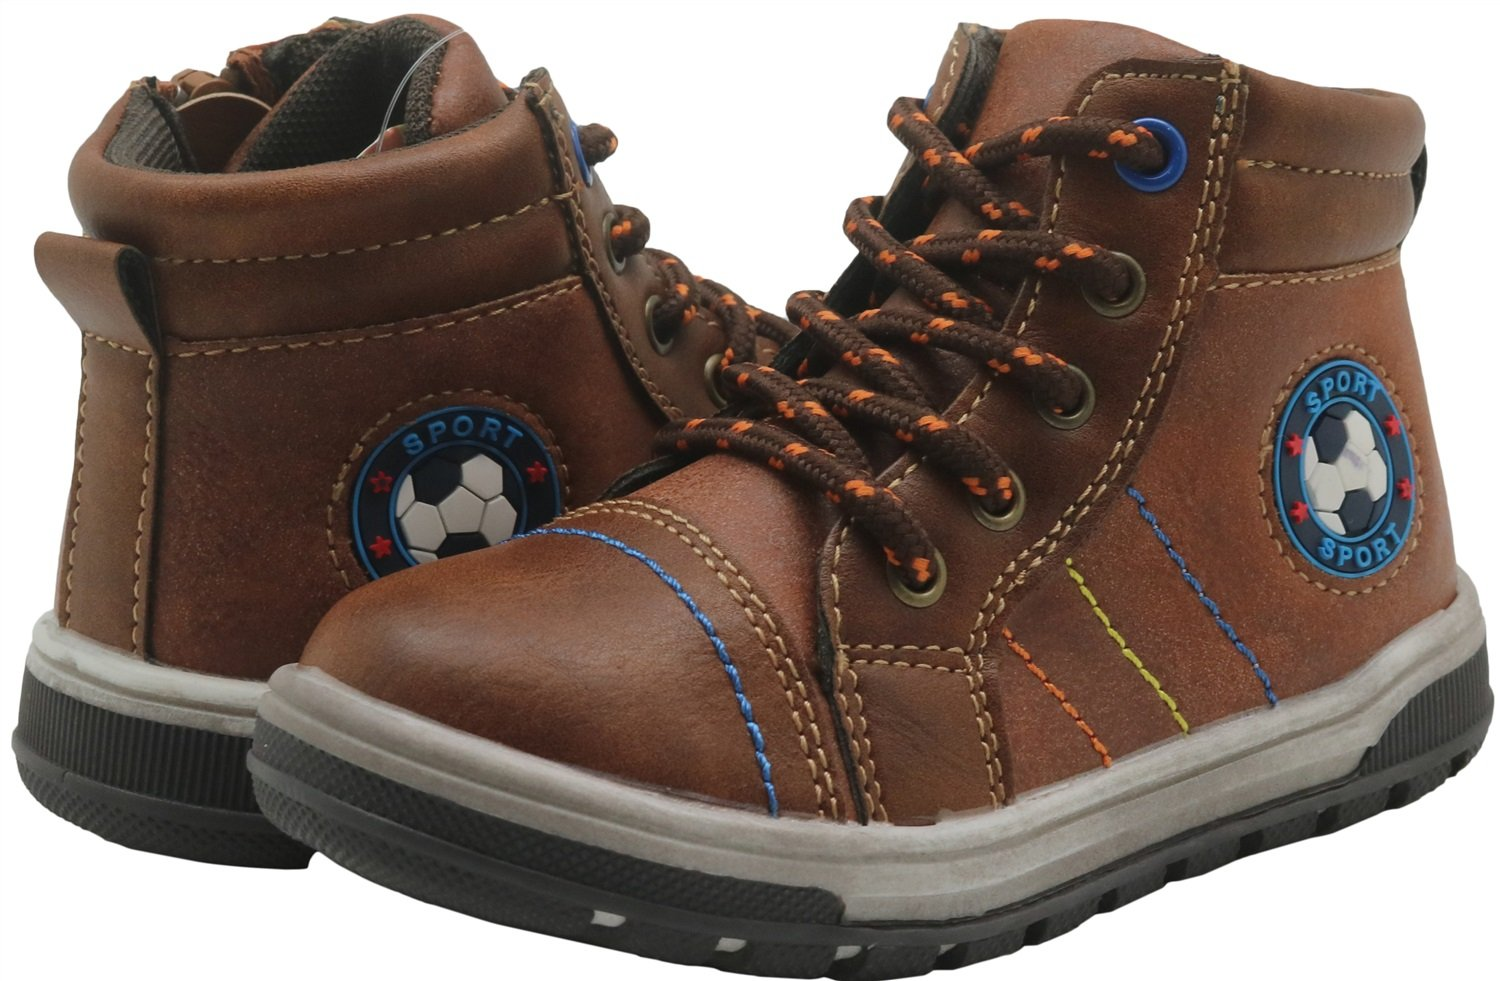 Non-Slip Boys Lace up Shoes Side Zipper Ankle Boots Toddler Durable Color : Brown , Size : 6 M US Toddler